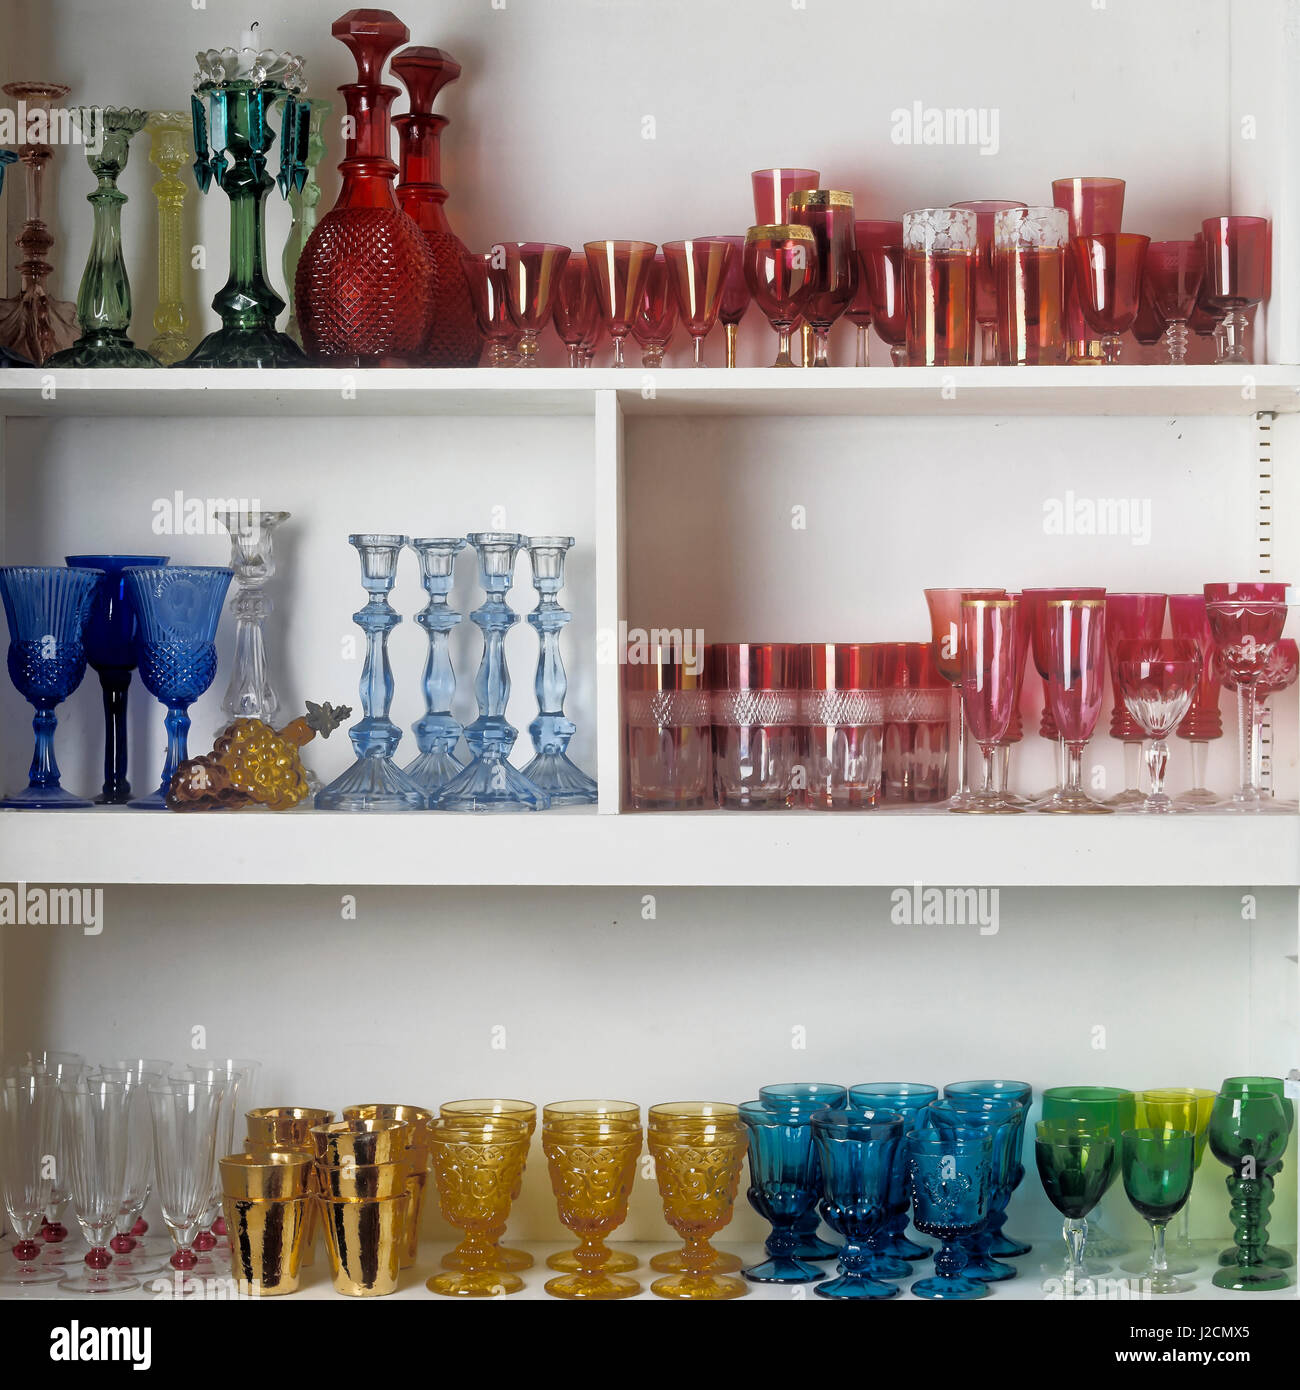 Shelves of colored glassware. - Stock Image